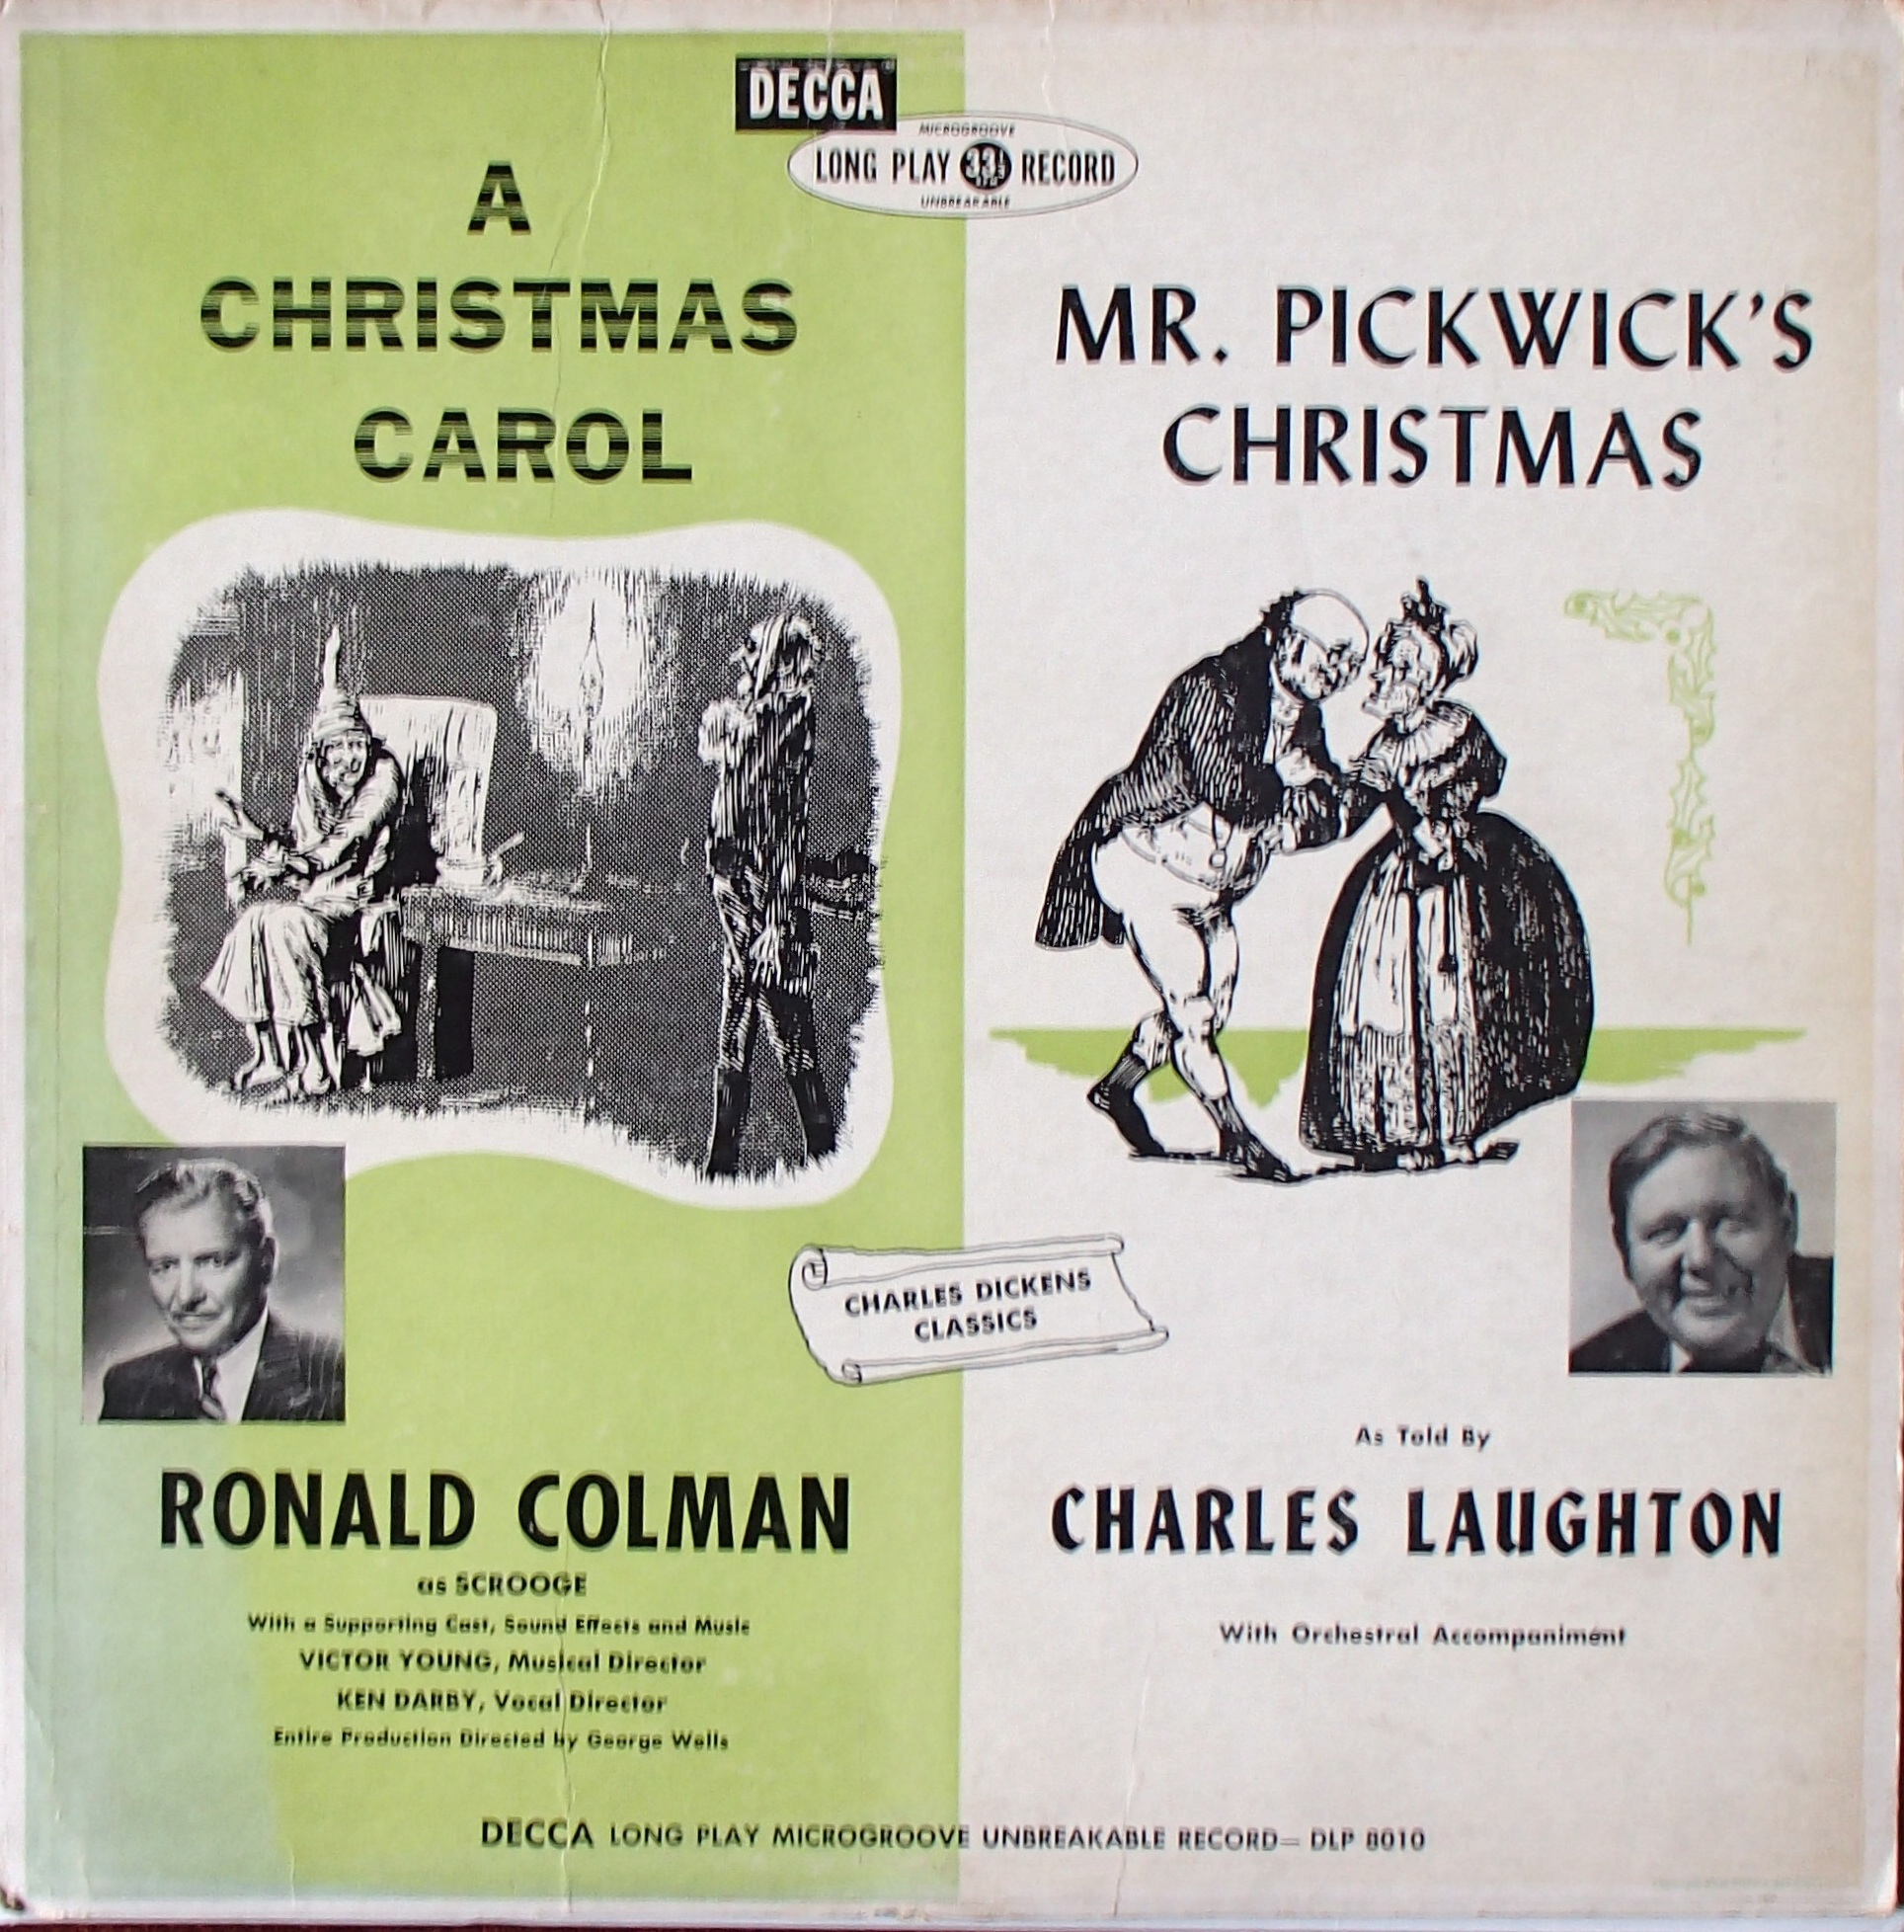 A Christmas Carol Soundtrack.Charles Dickens Classics A Christmas Carol Mr Pickwick S Christmas Original Soundtrack Buy It Online At The Soundtrack To Your Life